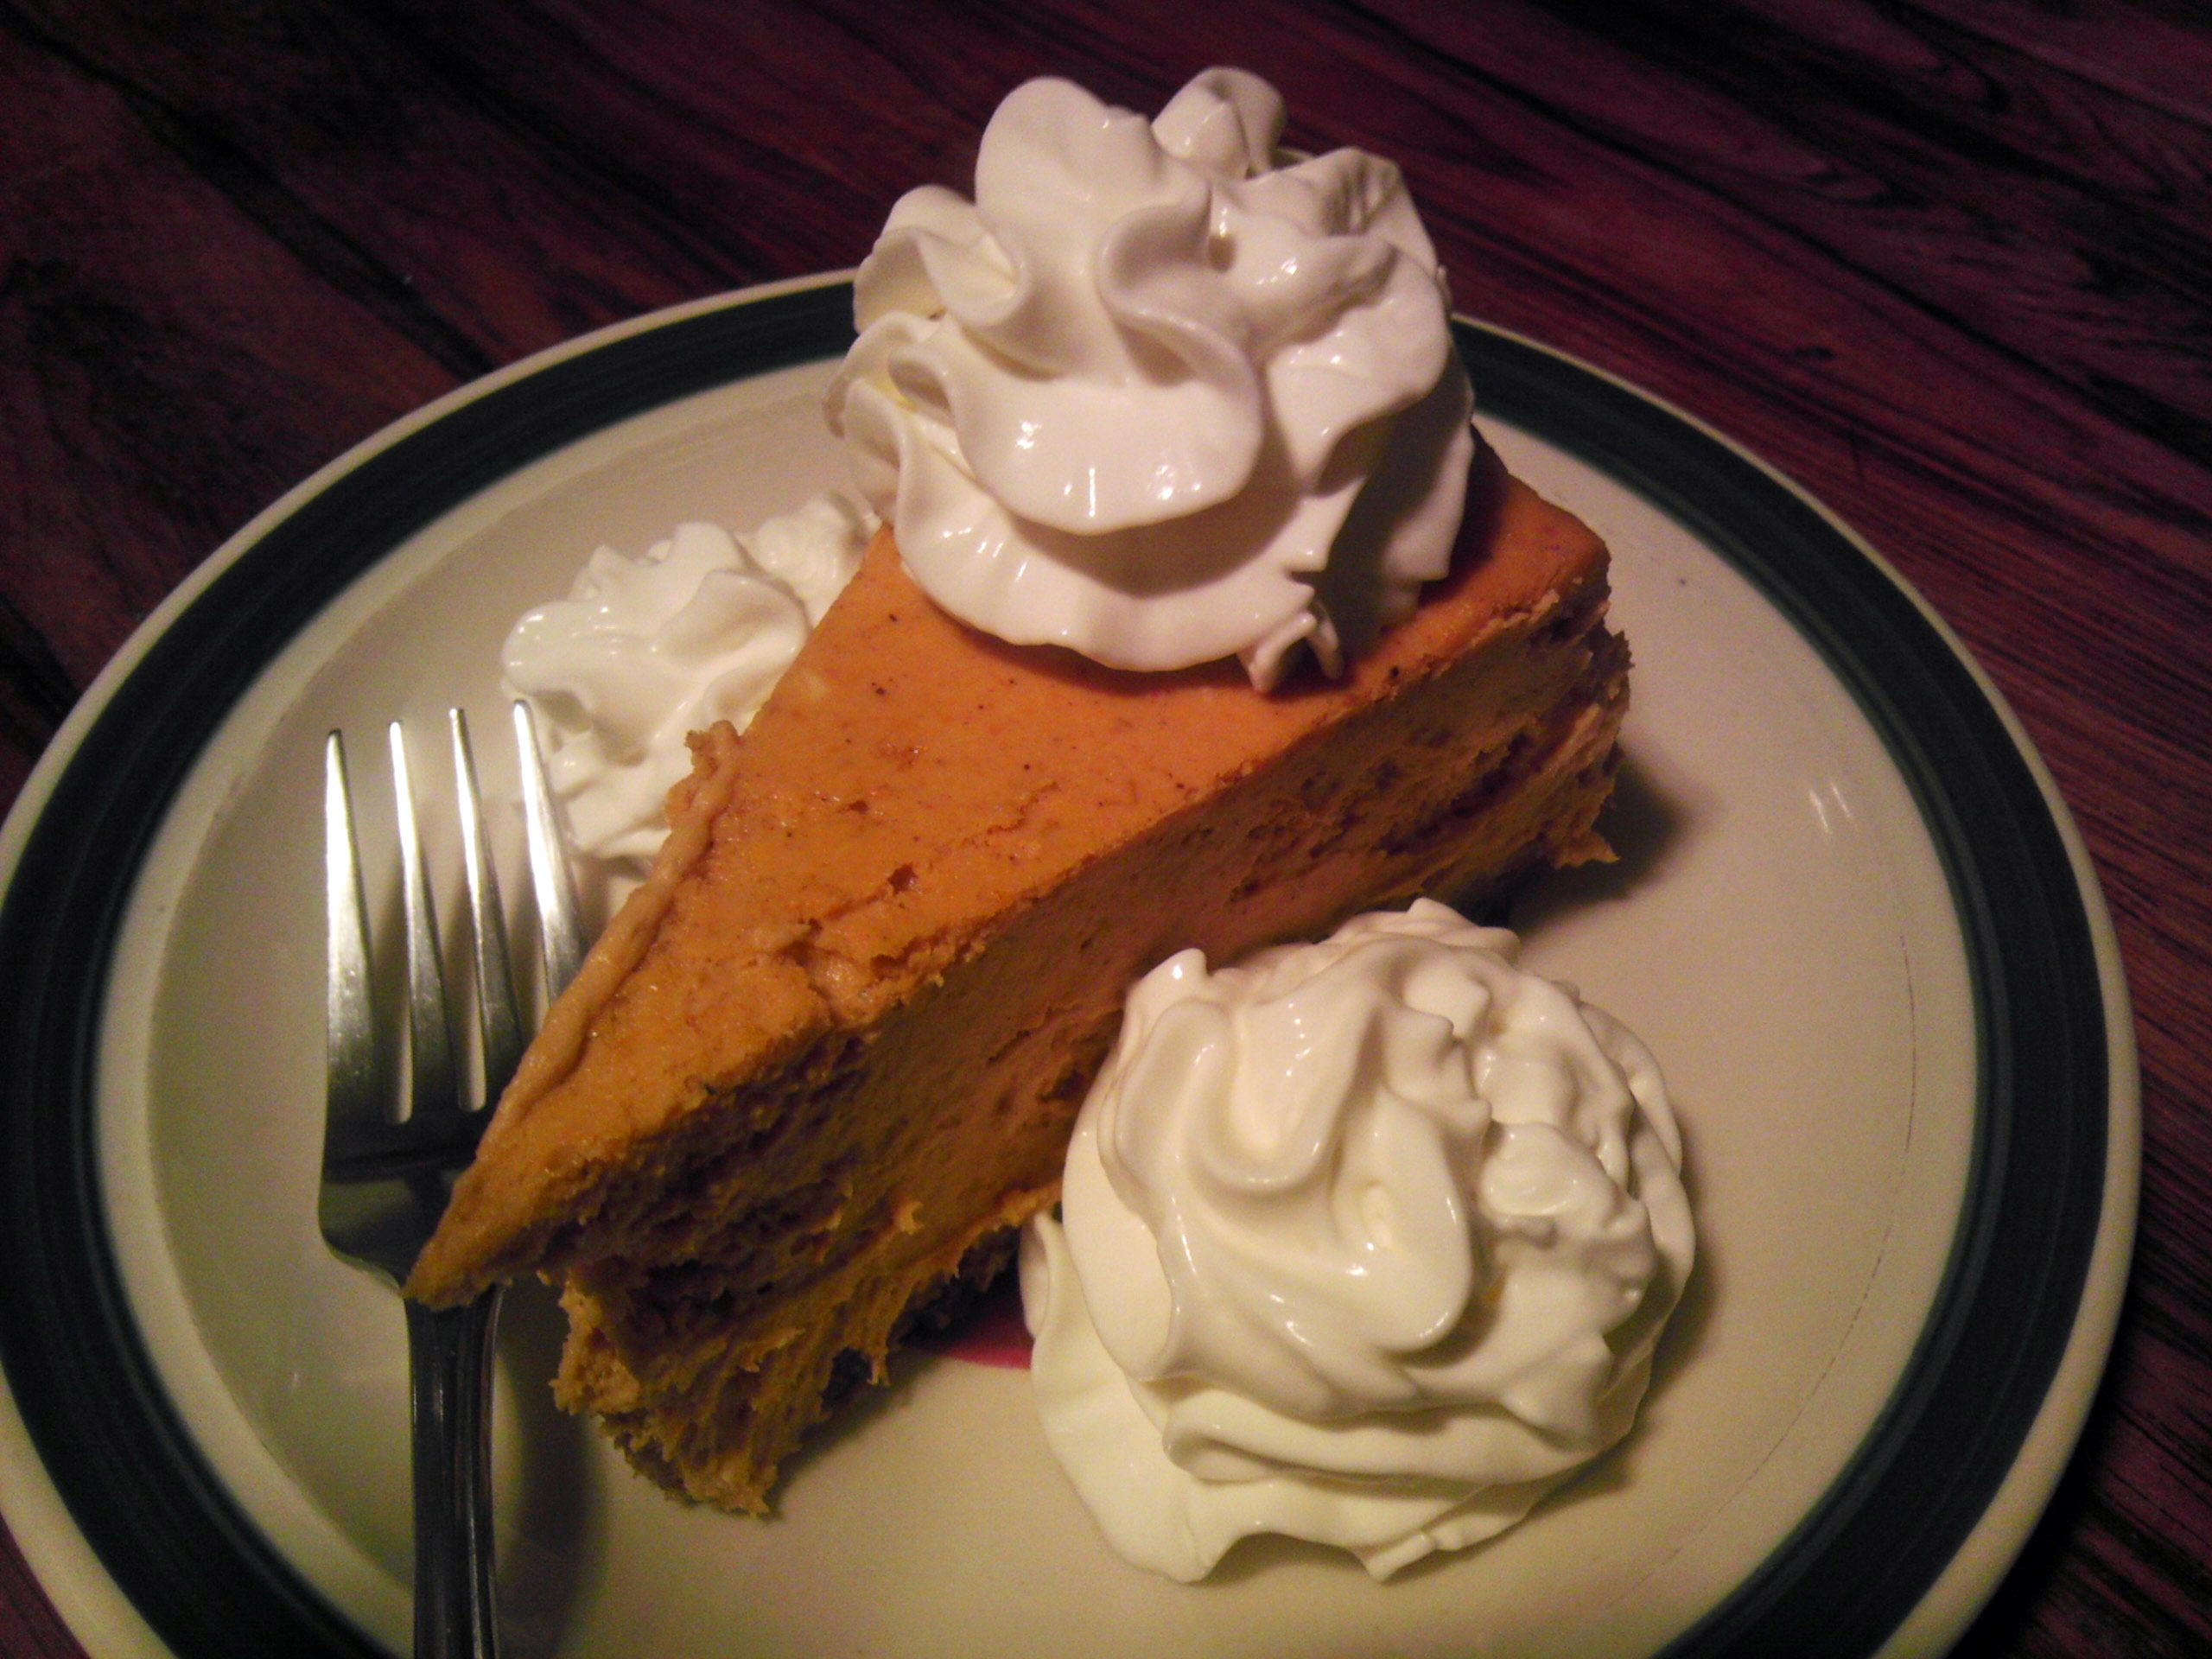 pumpkin-pie-with-whipped-cream-on-top